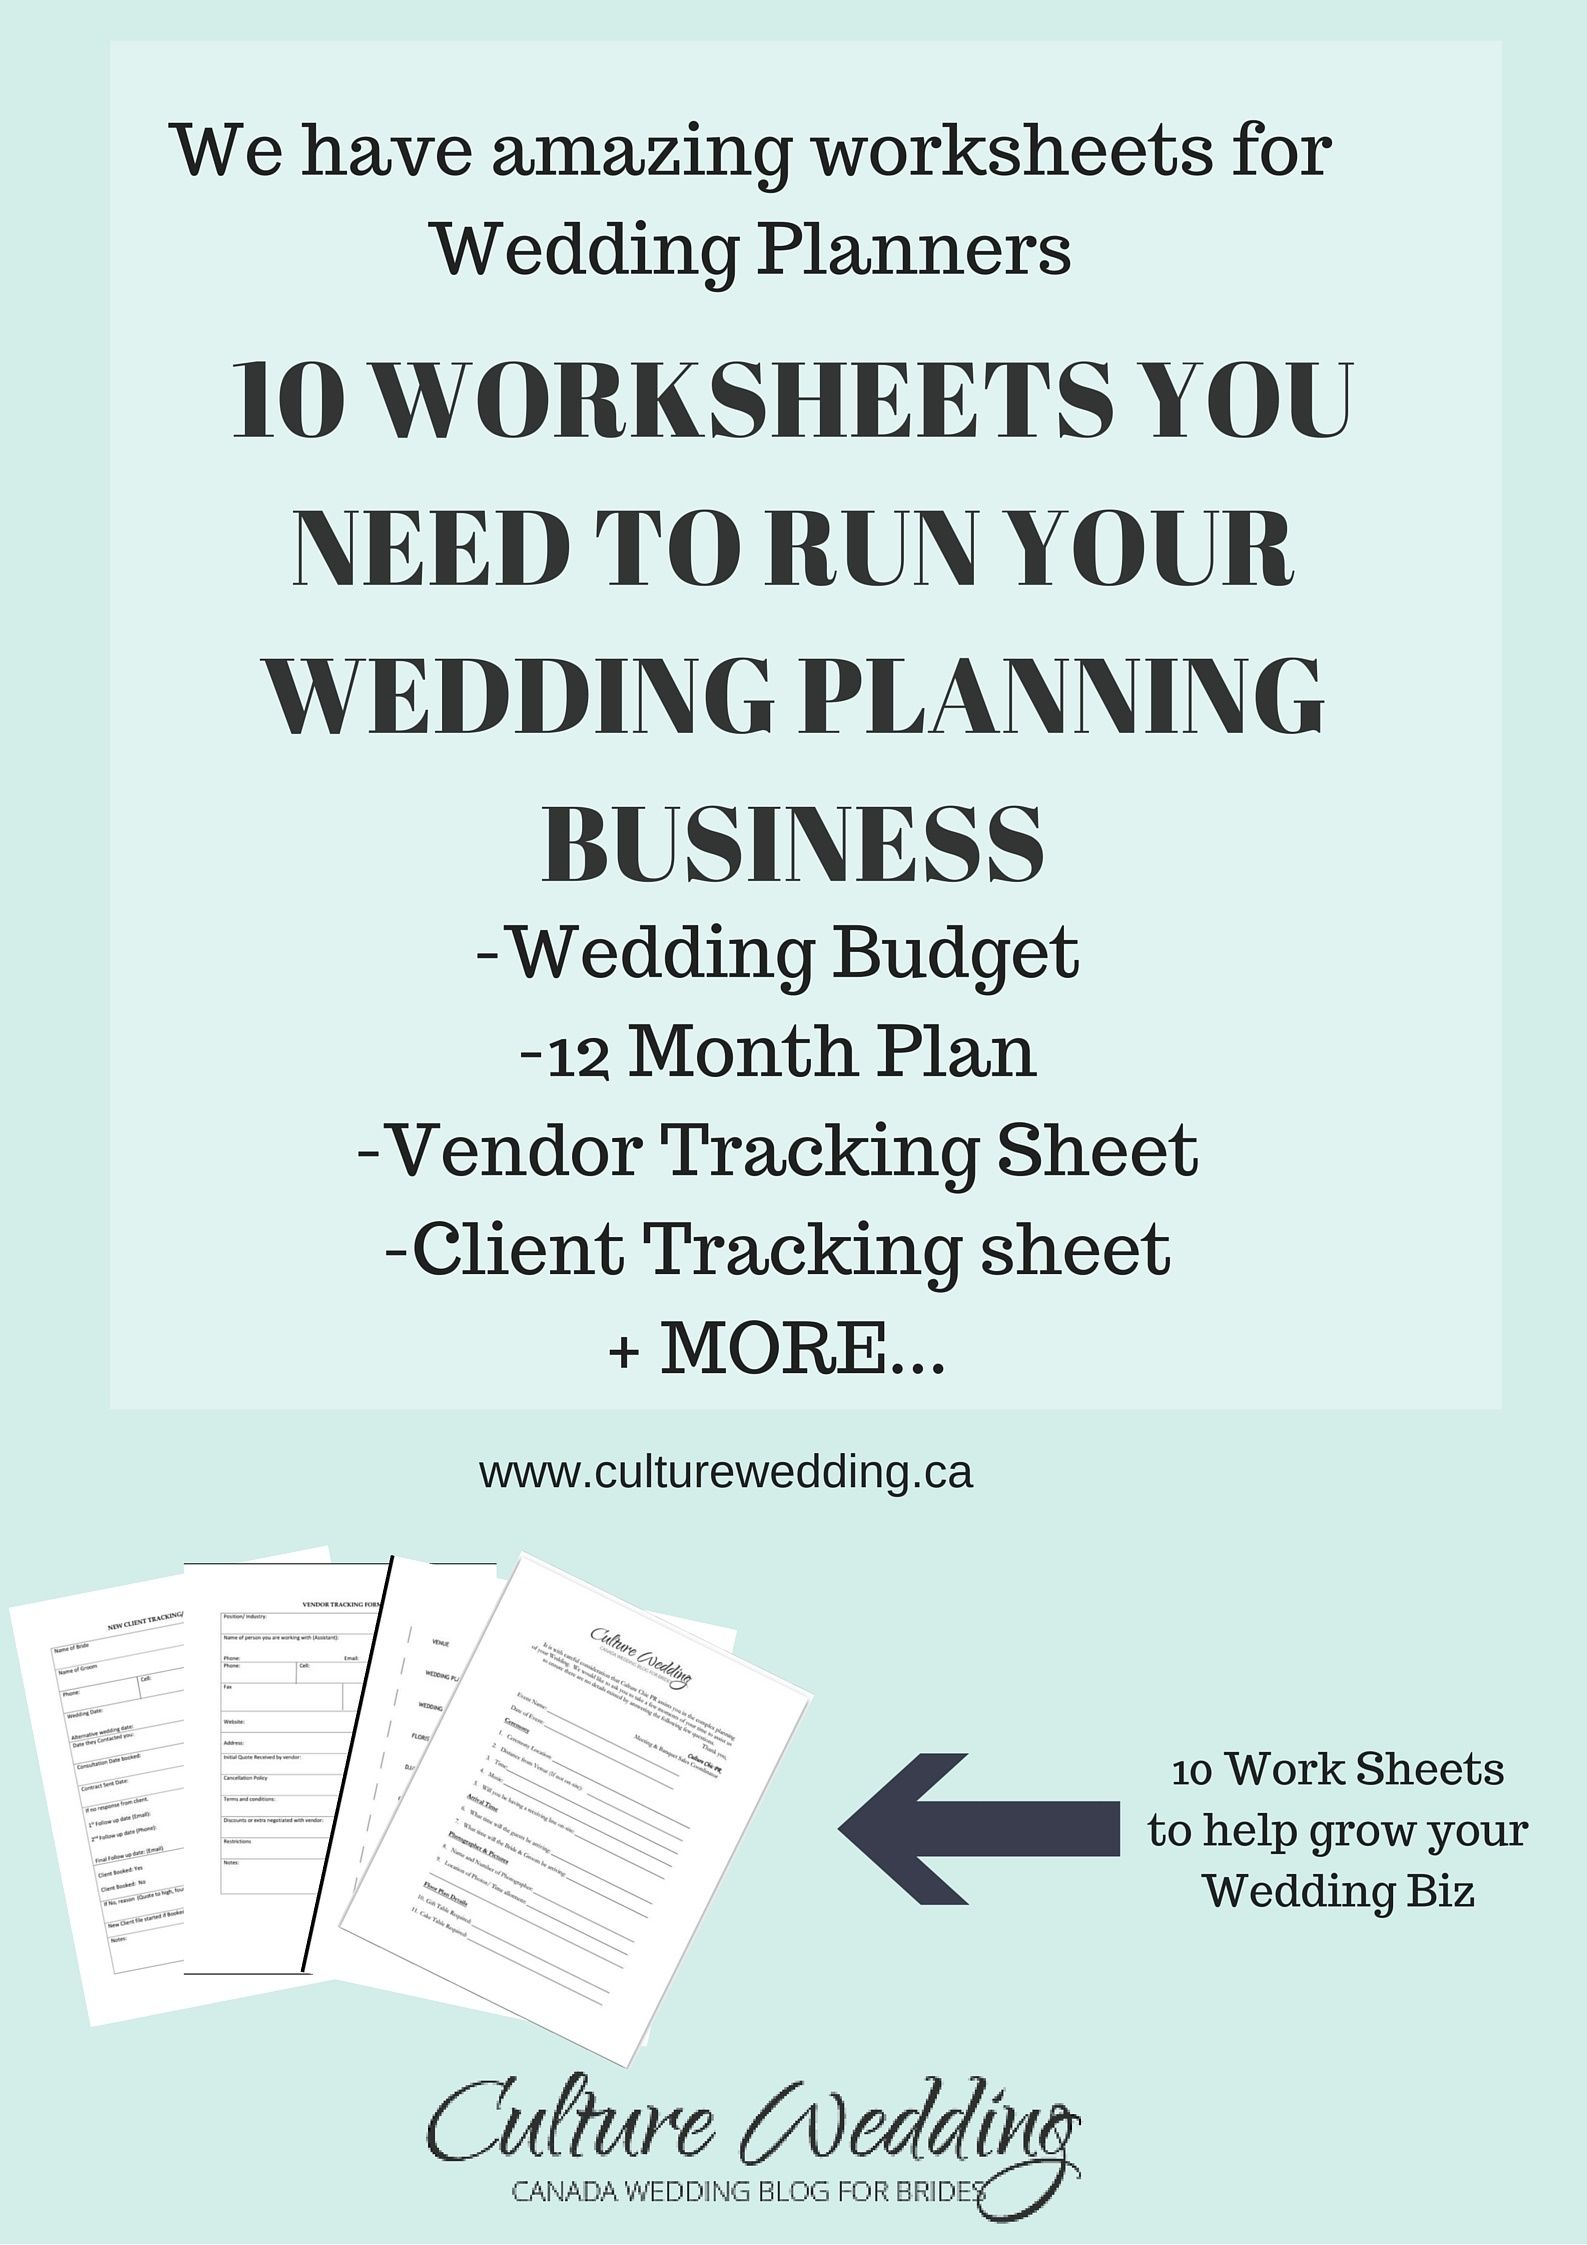 Worksheet For Client Wedding Planners